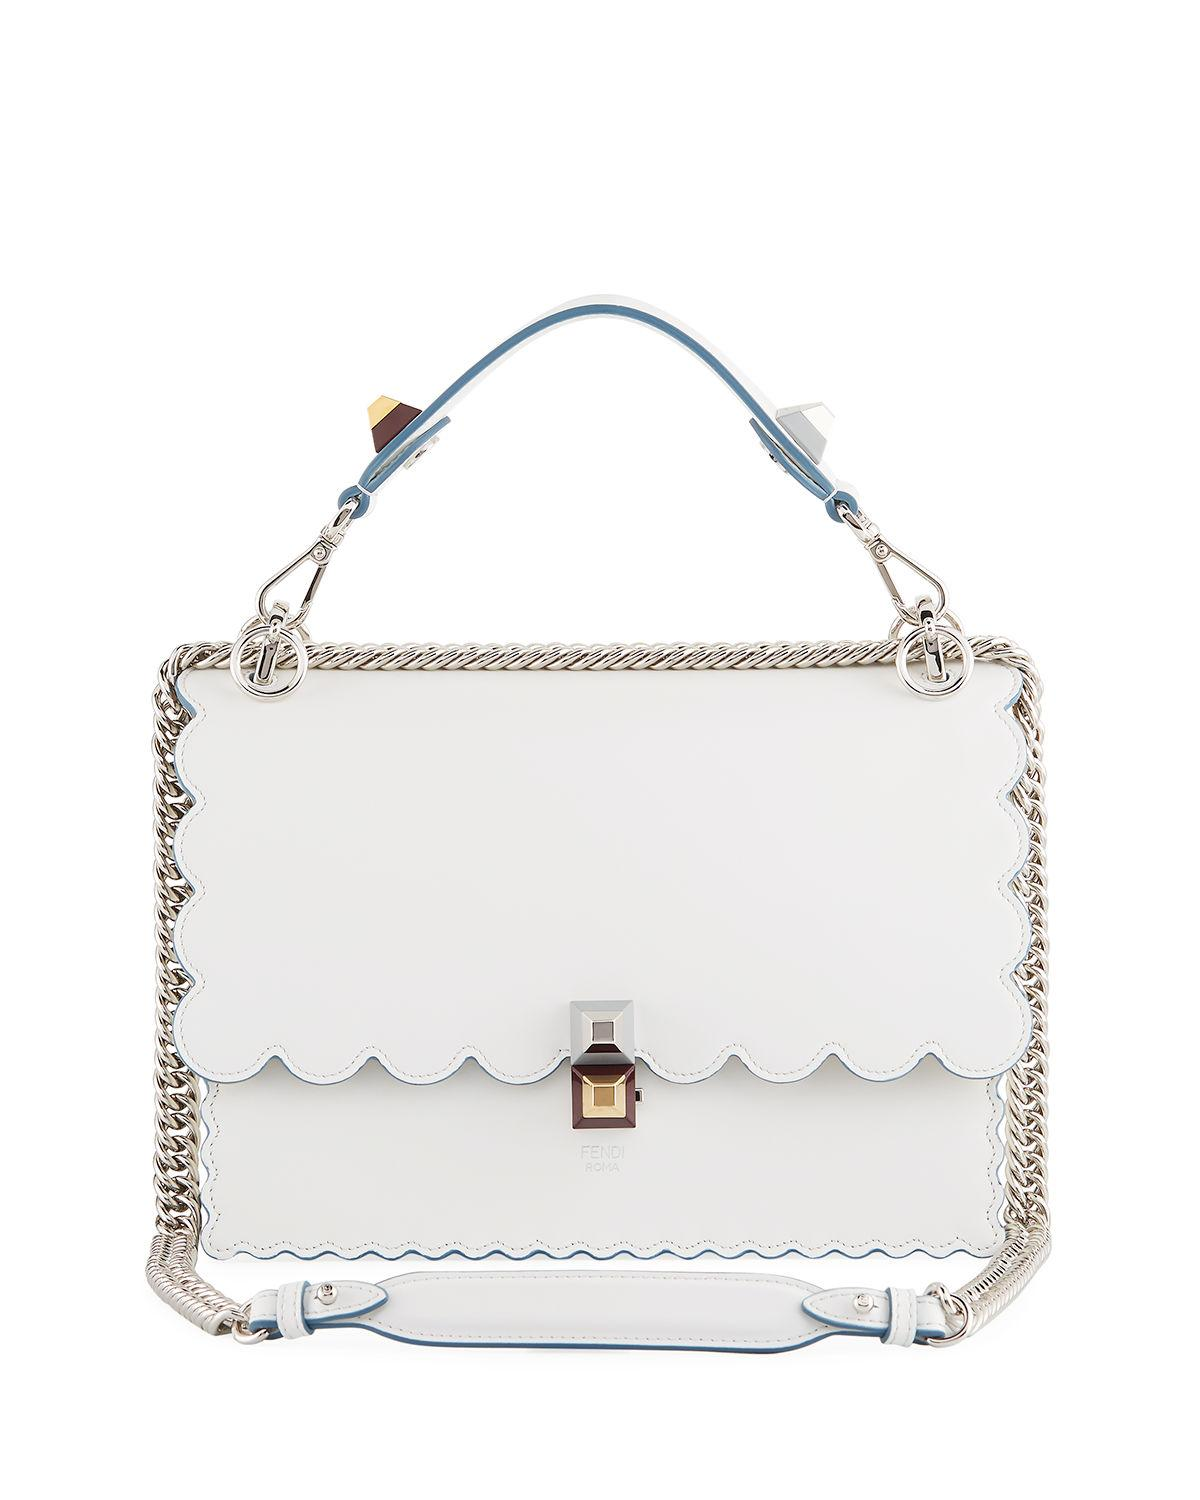 c32d13406fa Fendi Kan I Regular Leather Scalloped Shoulder Bag, White | ModeSens